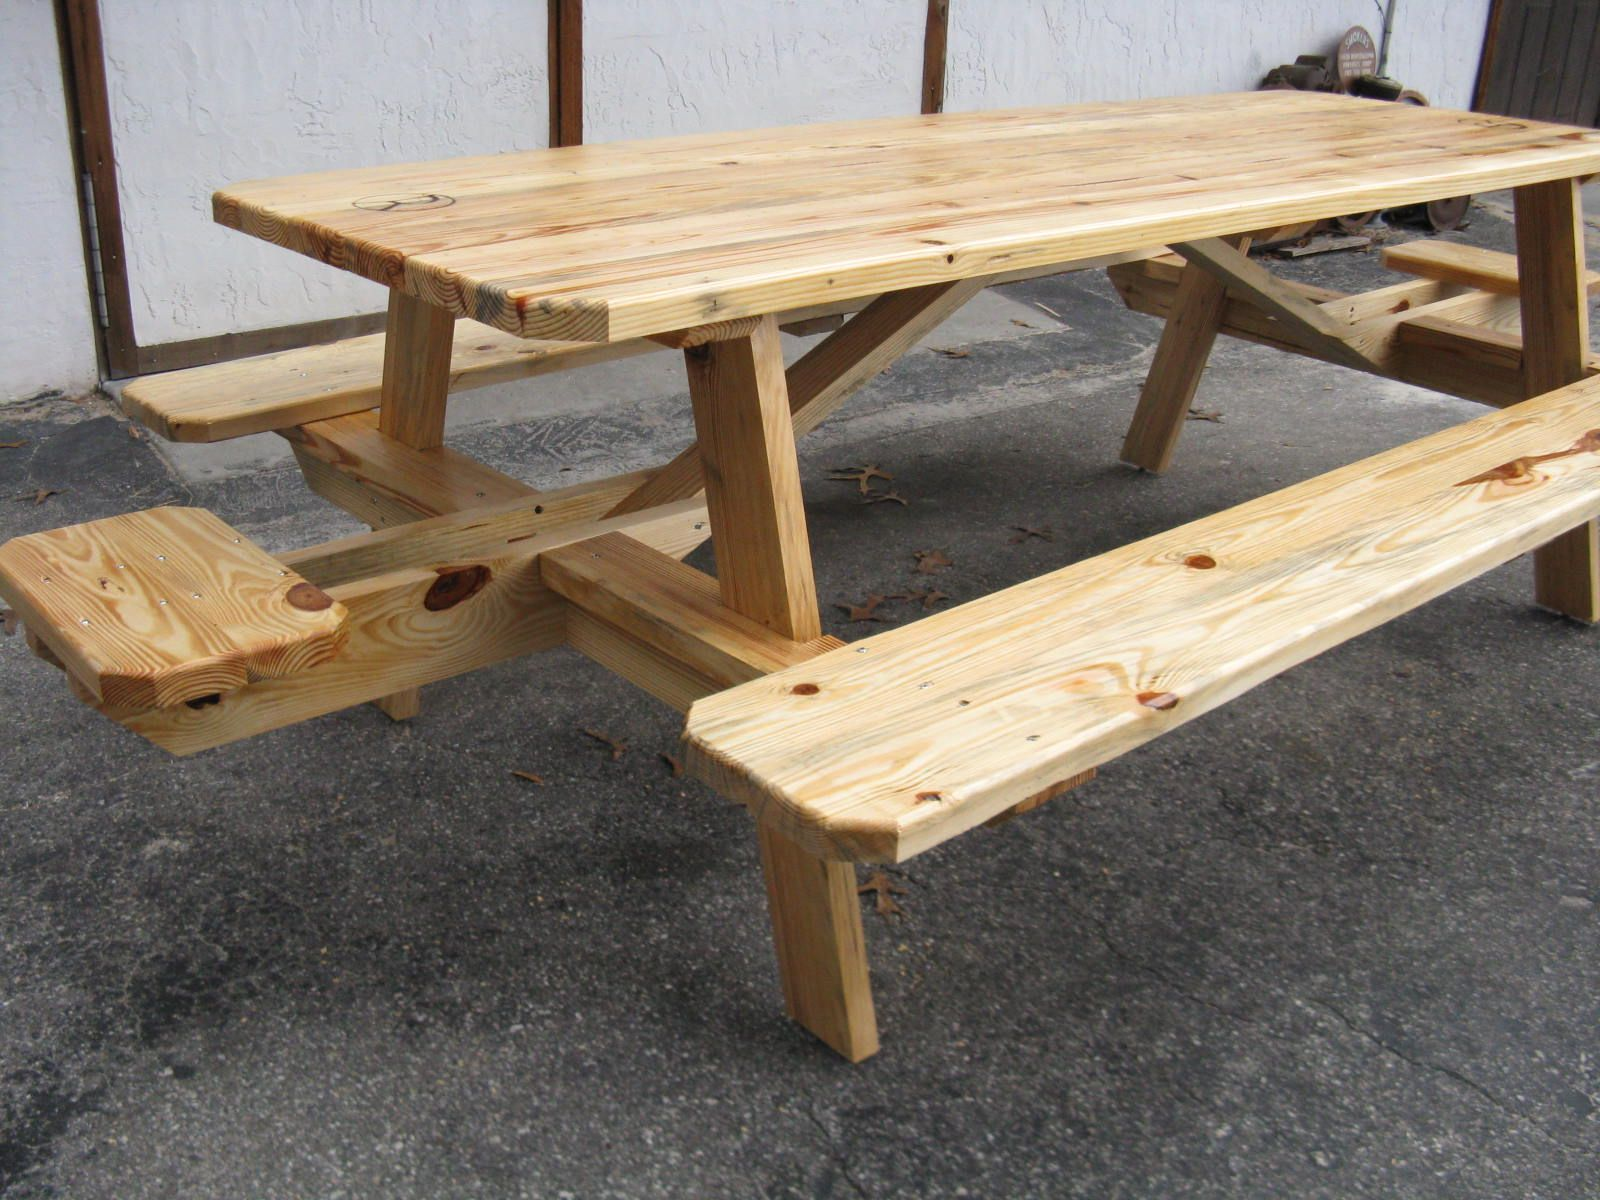 Img 0001 Jpg 1600 1200 Picnic Table Wood Bench Outdoor Wood Dining Table